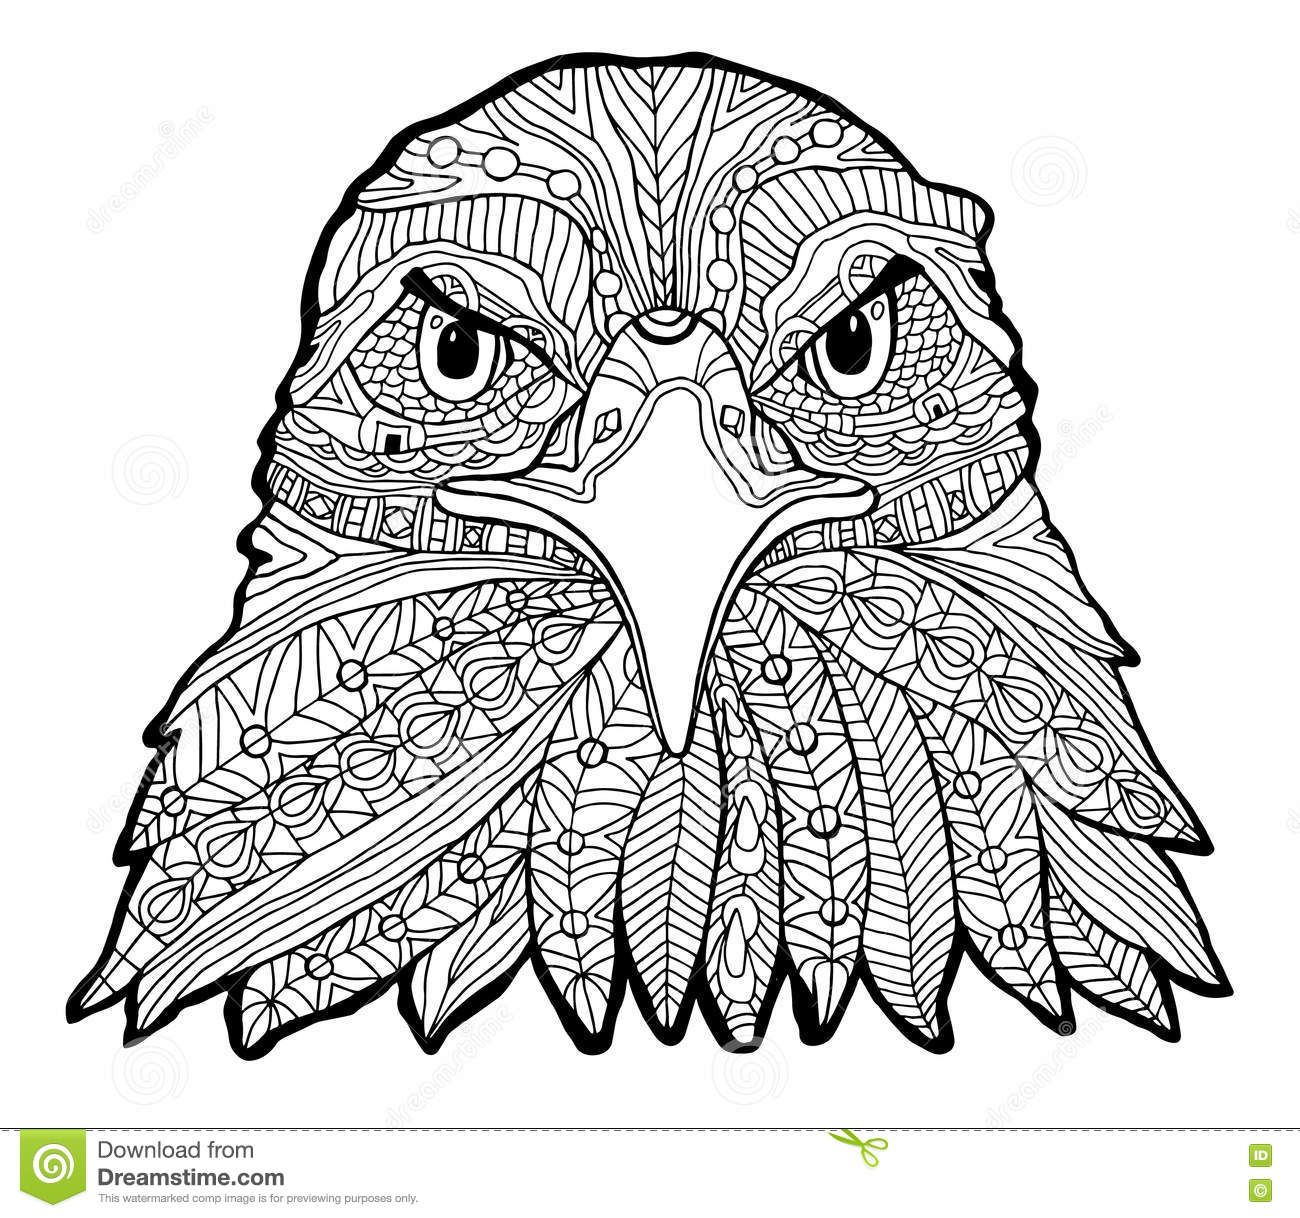 Coloriage Mandala Aigle.Image Result For Printable Adult Eagle Front View Coloring Pages